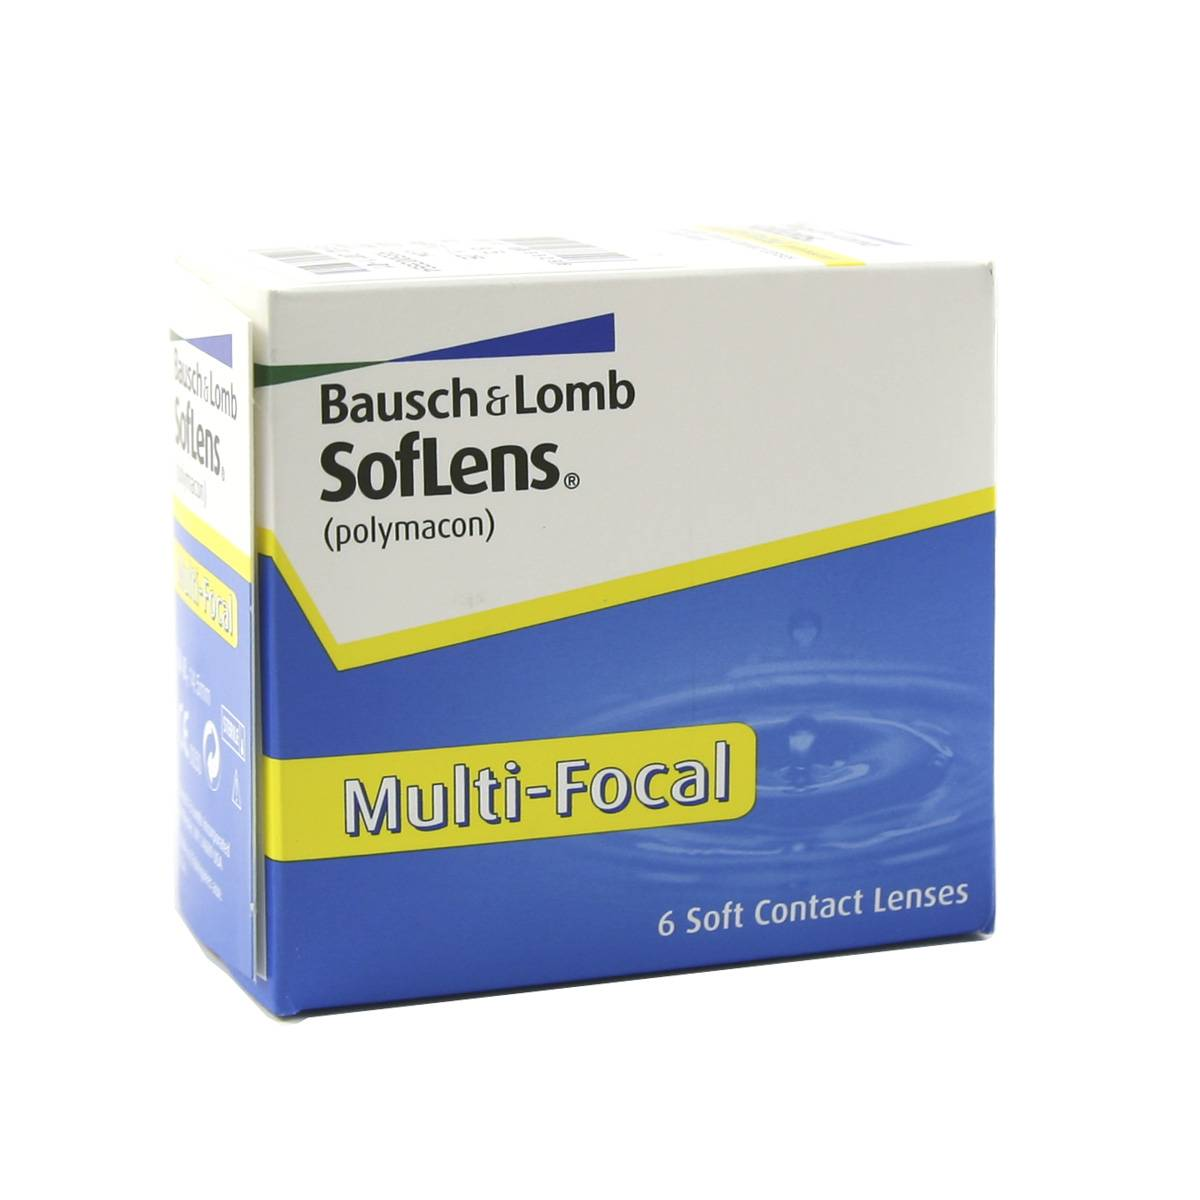 Bausch & Lomb Soflens Multi Focal (6 Contact Lenses), Bausch & Lomb, Multi-Focal Monthly Lenses, Polymacon